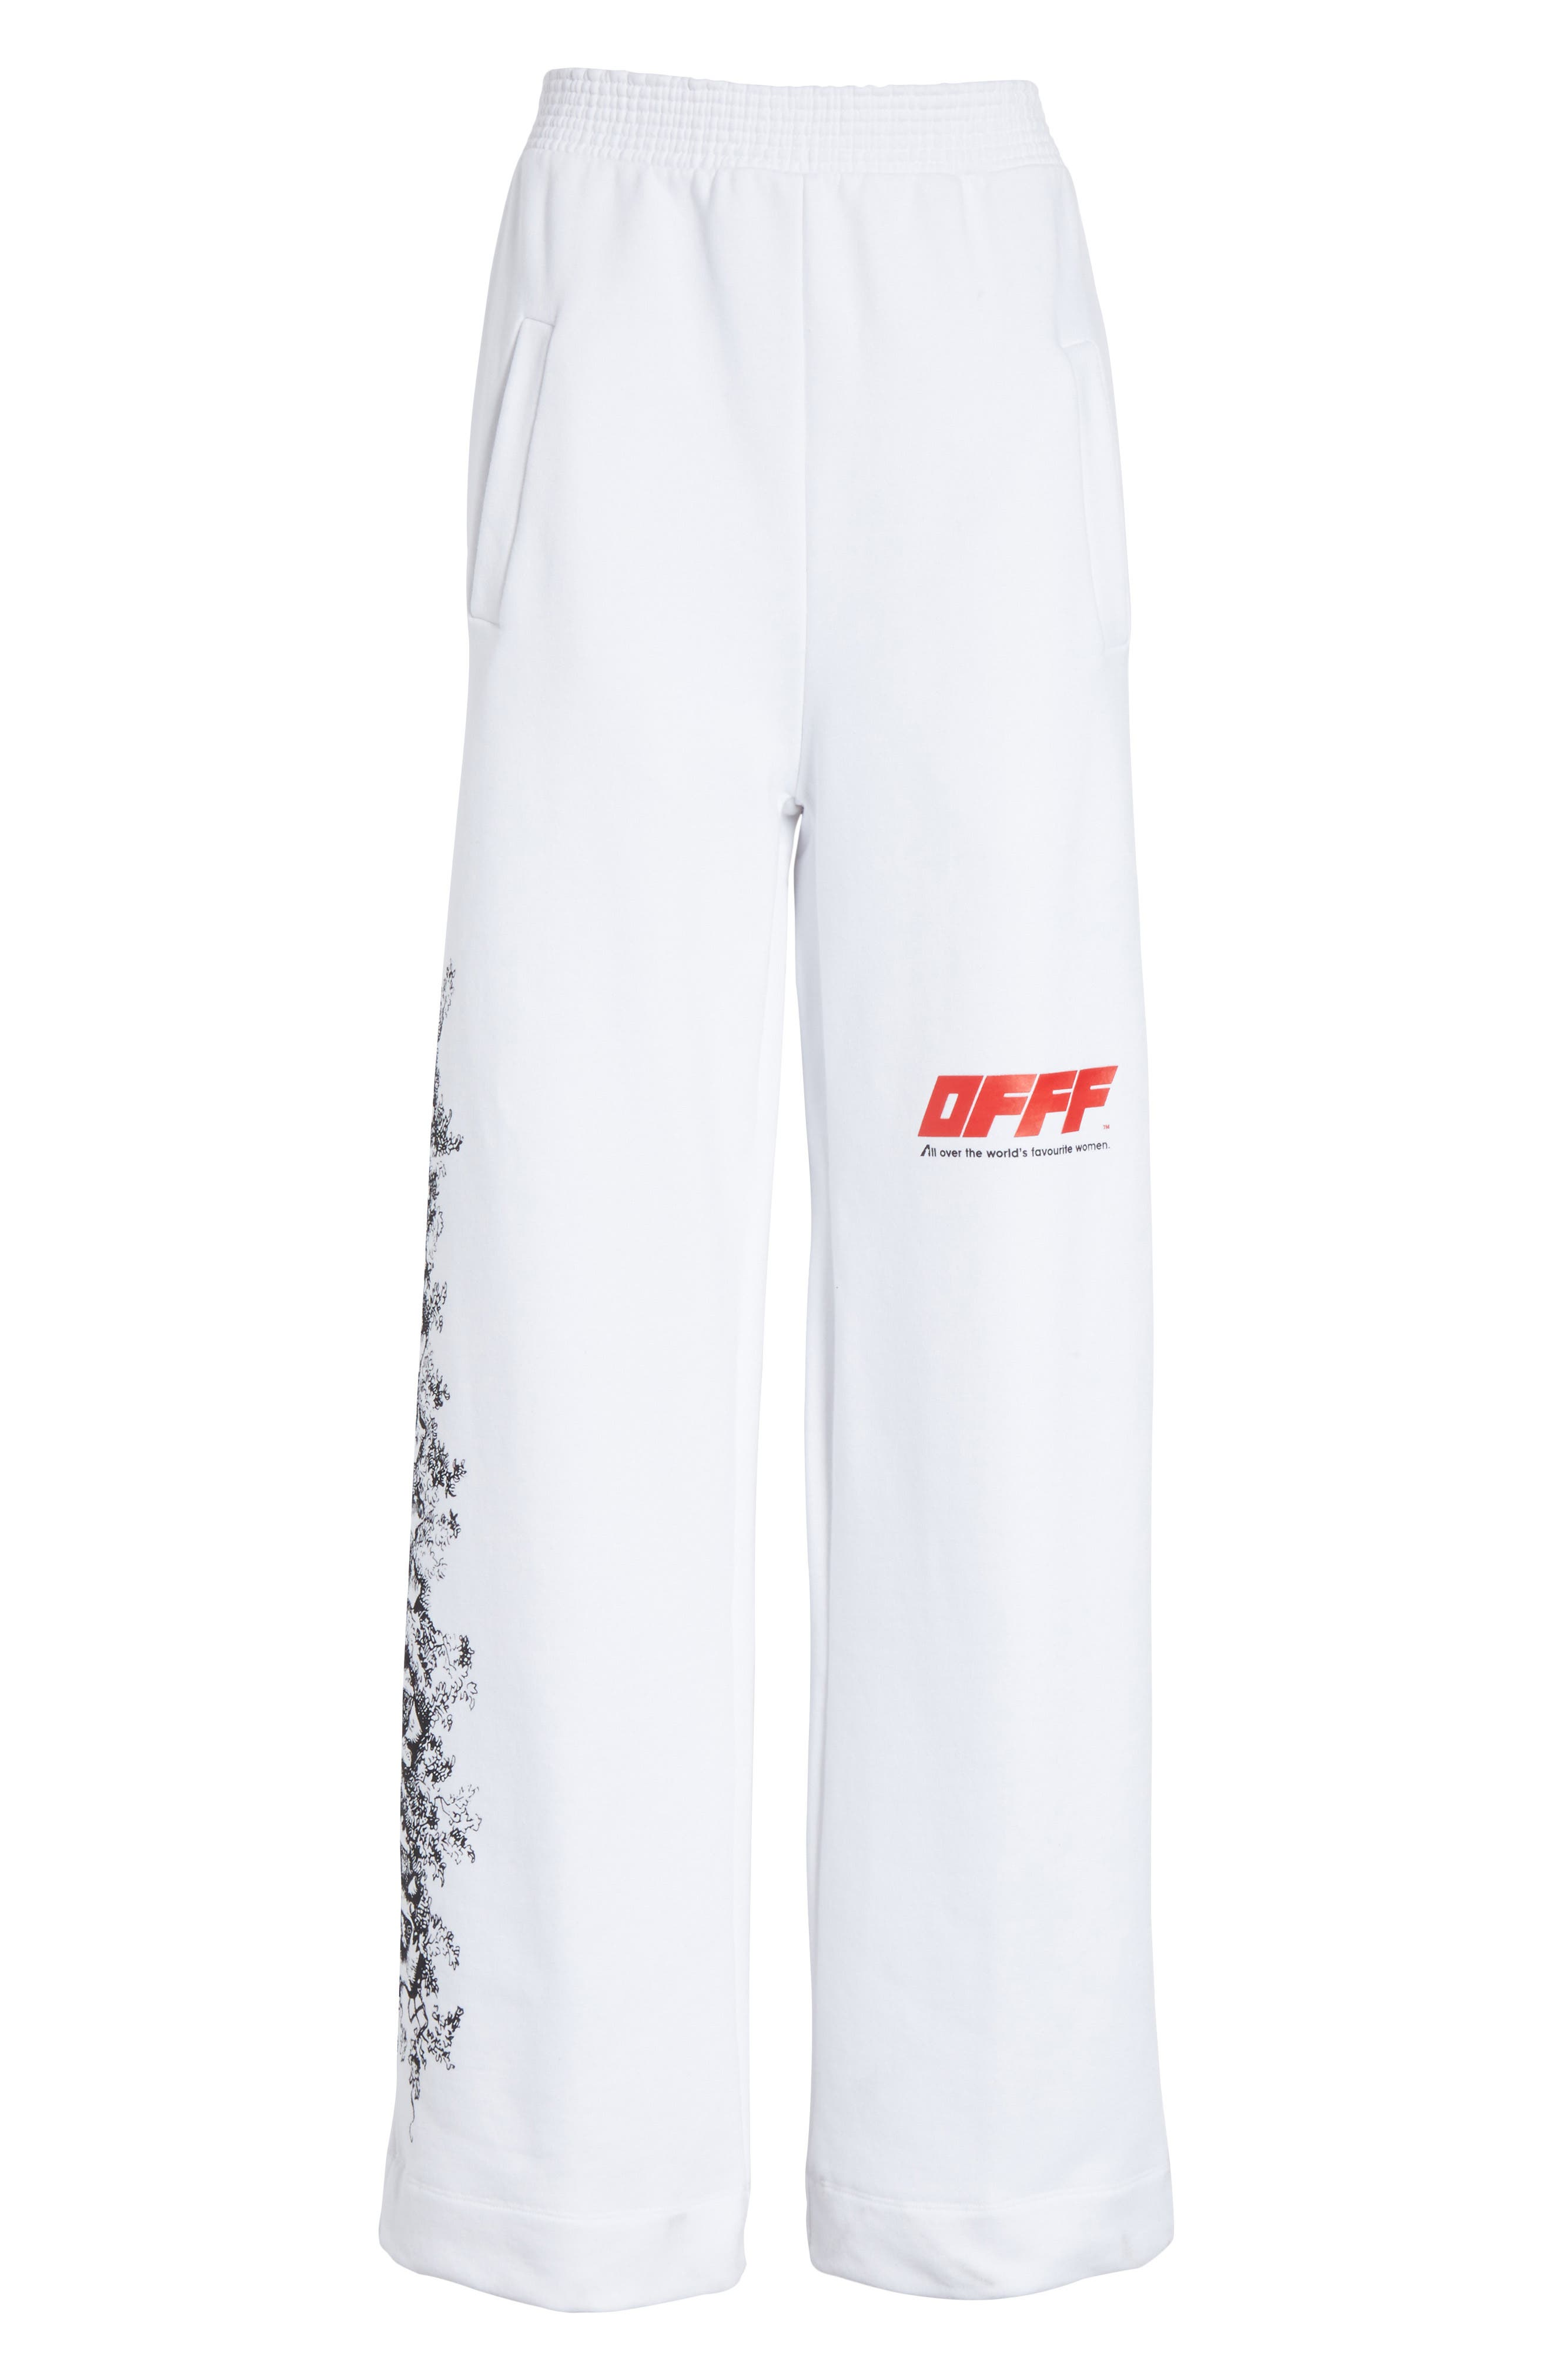 OFFF Sweatpants,                             Alternate thumbnail 7, color,                             White Red